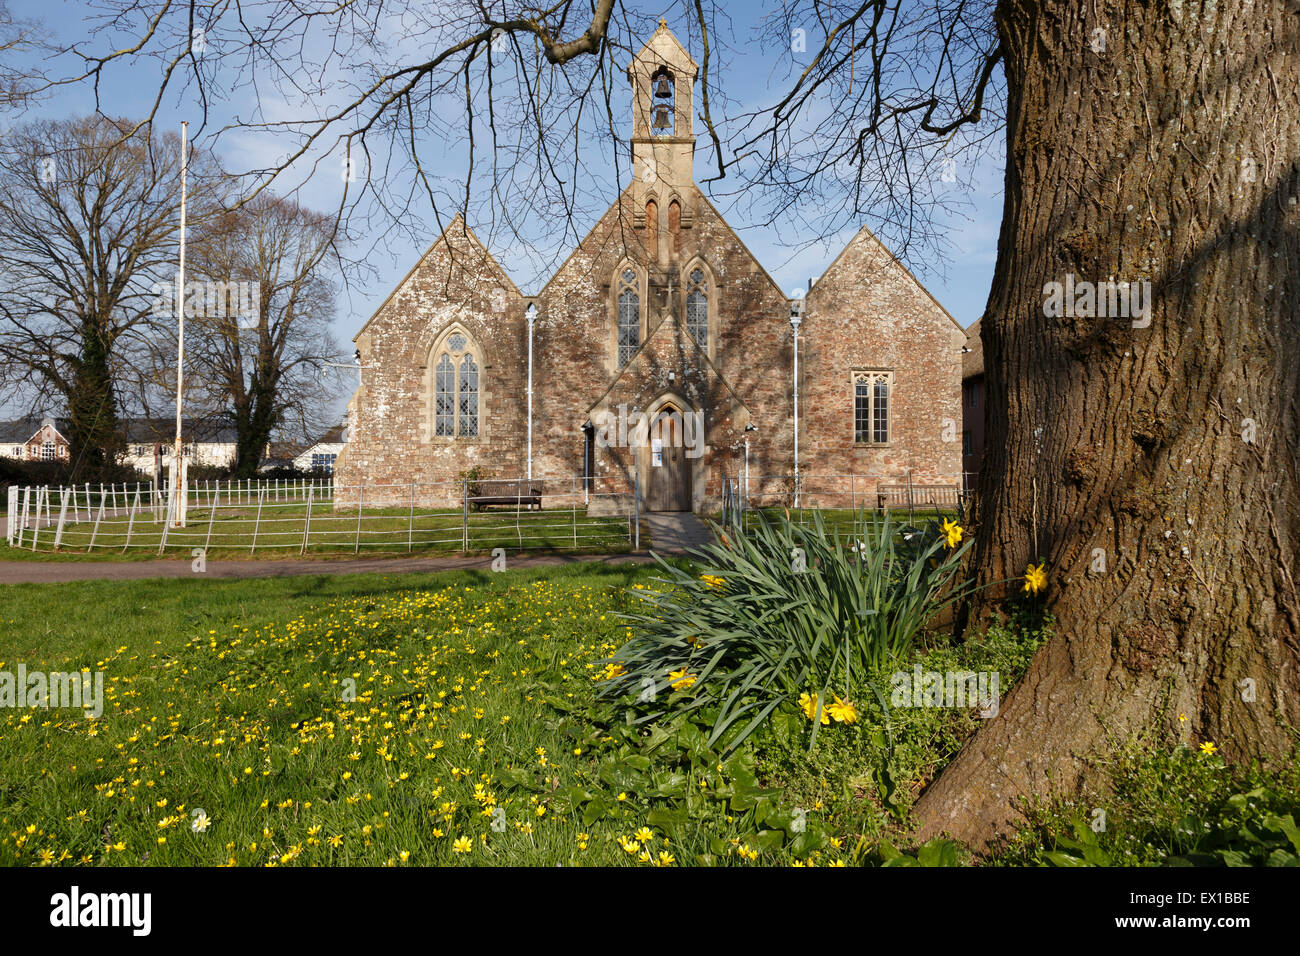 St Peter's Church of England church in Williton during springtime. Stock Photo